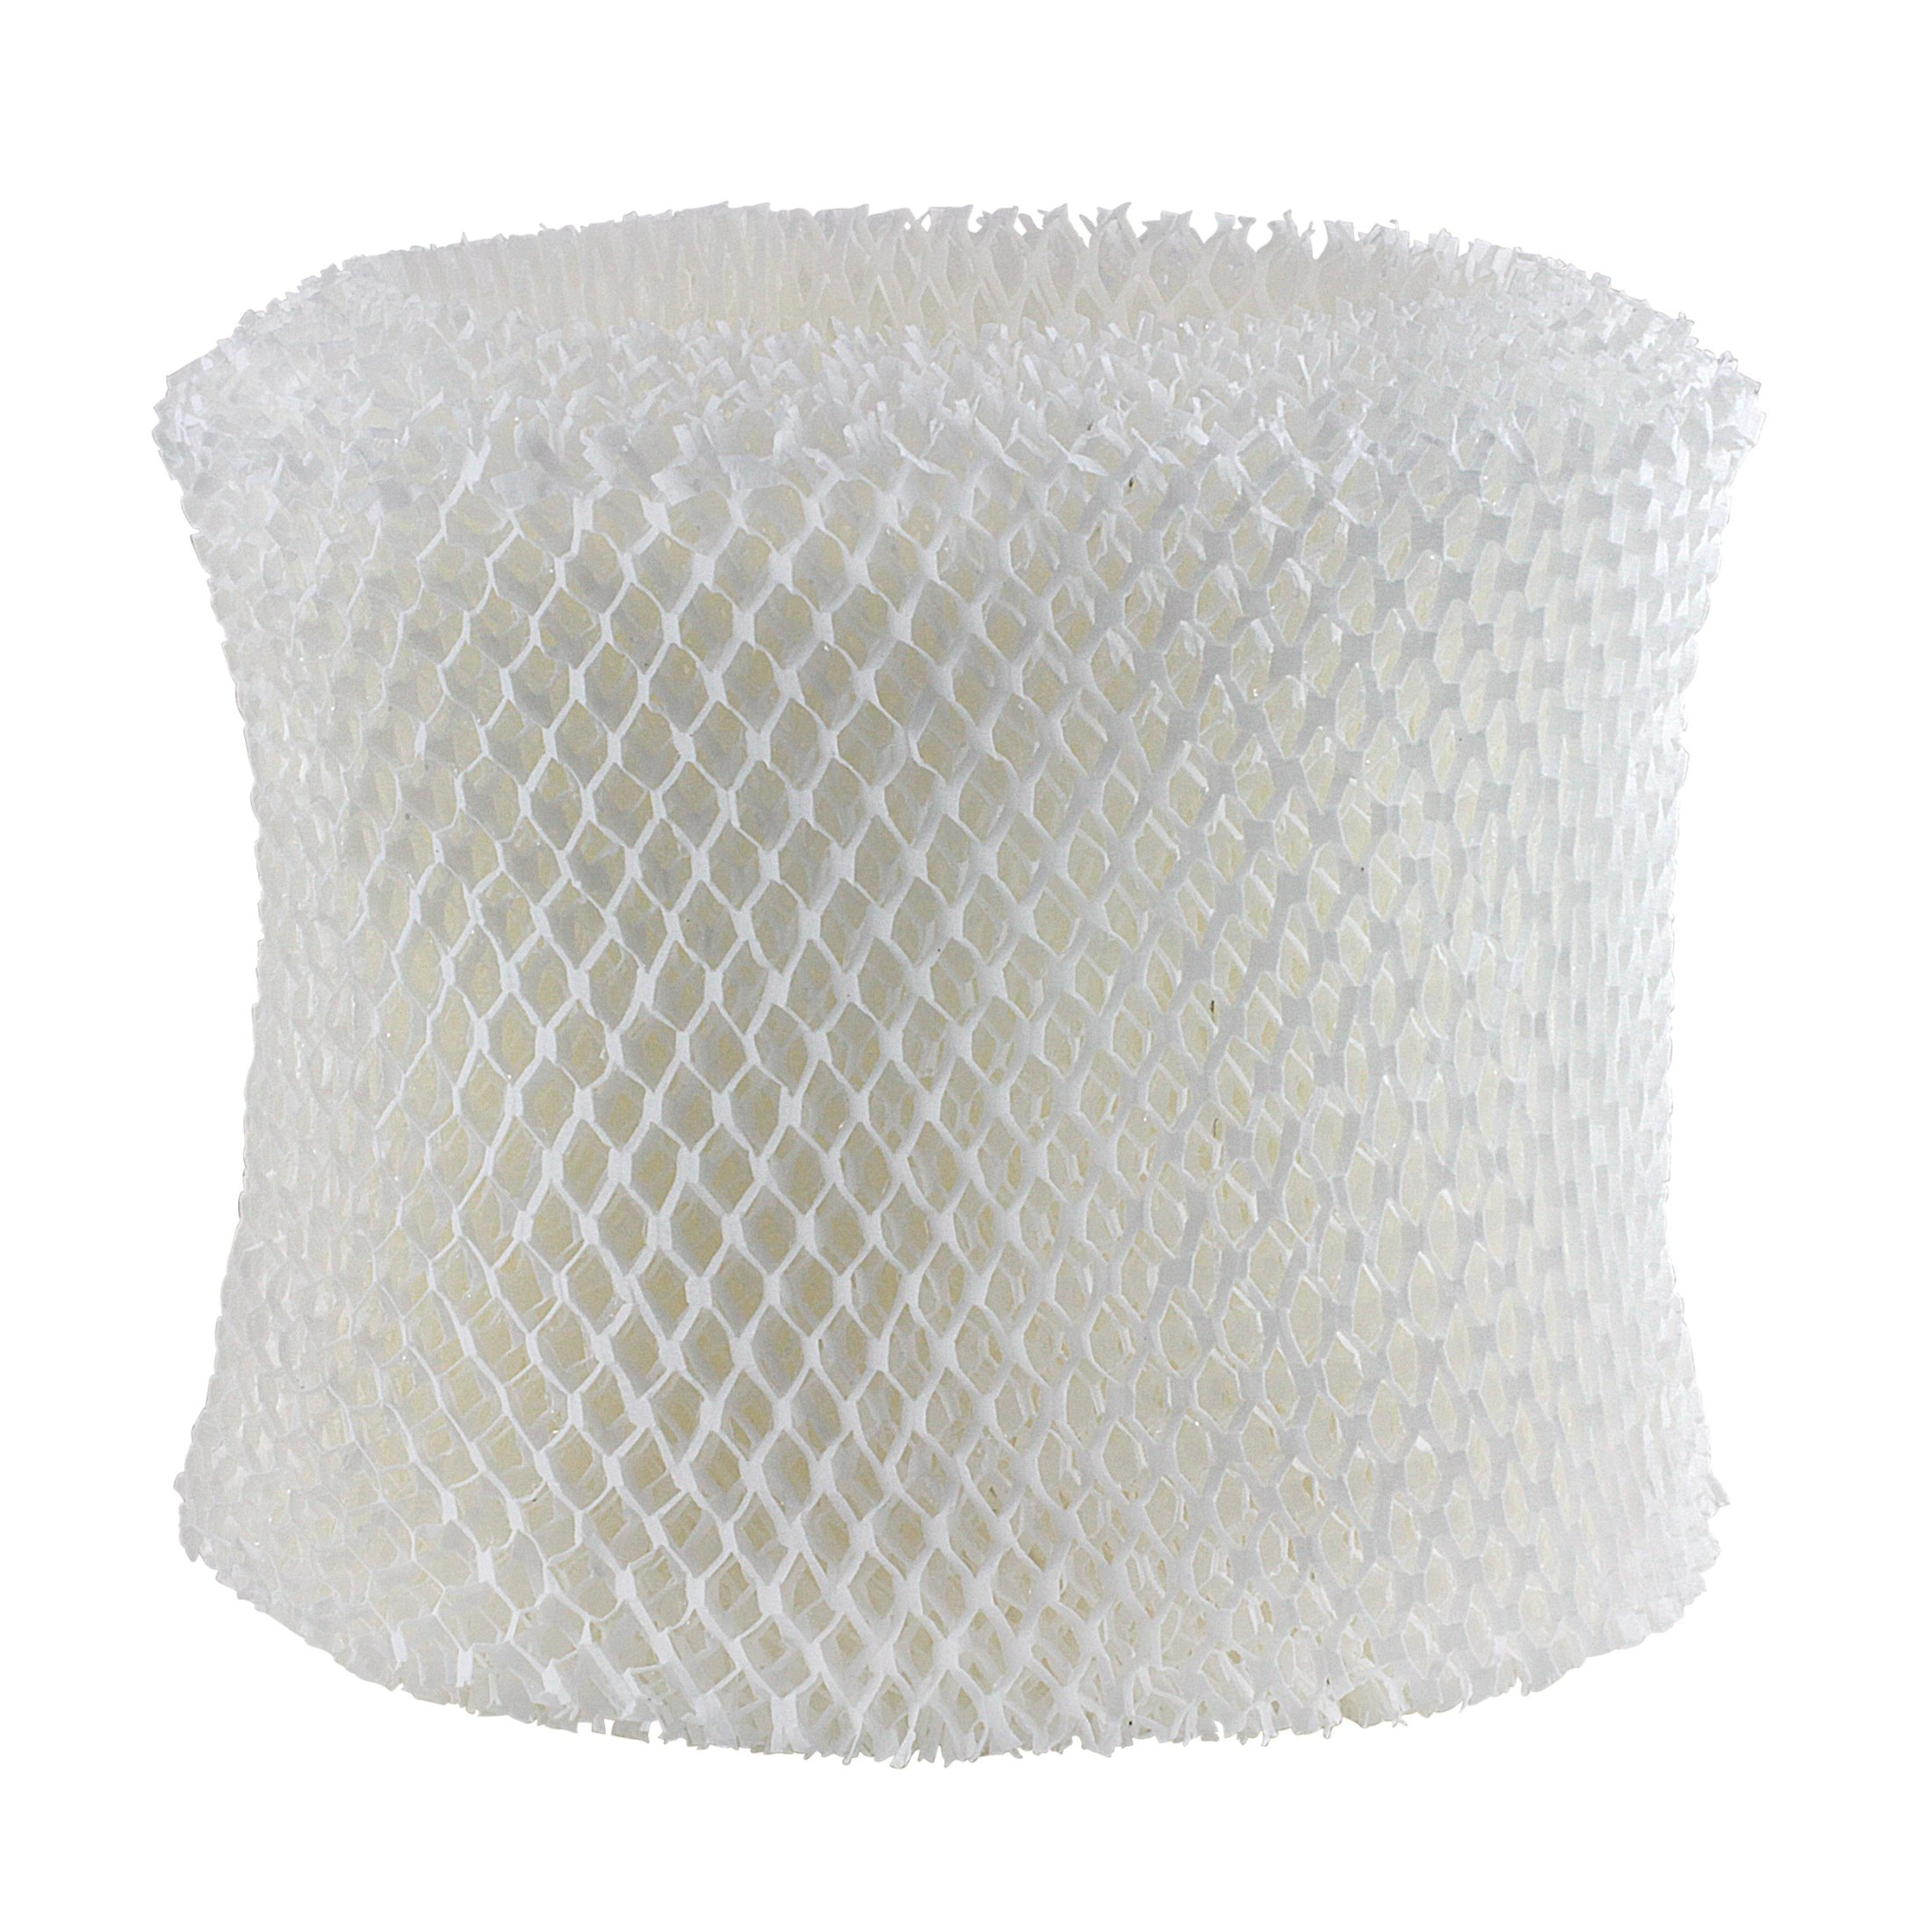 FilterBuy Holmes HWF65 & H65-C Humidifier Wick Replacement Filters. Designed to Replace Holmes Part # HWF-65. Pack of 3. by FilterBuy (Image #2)